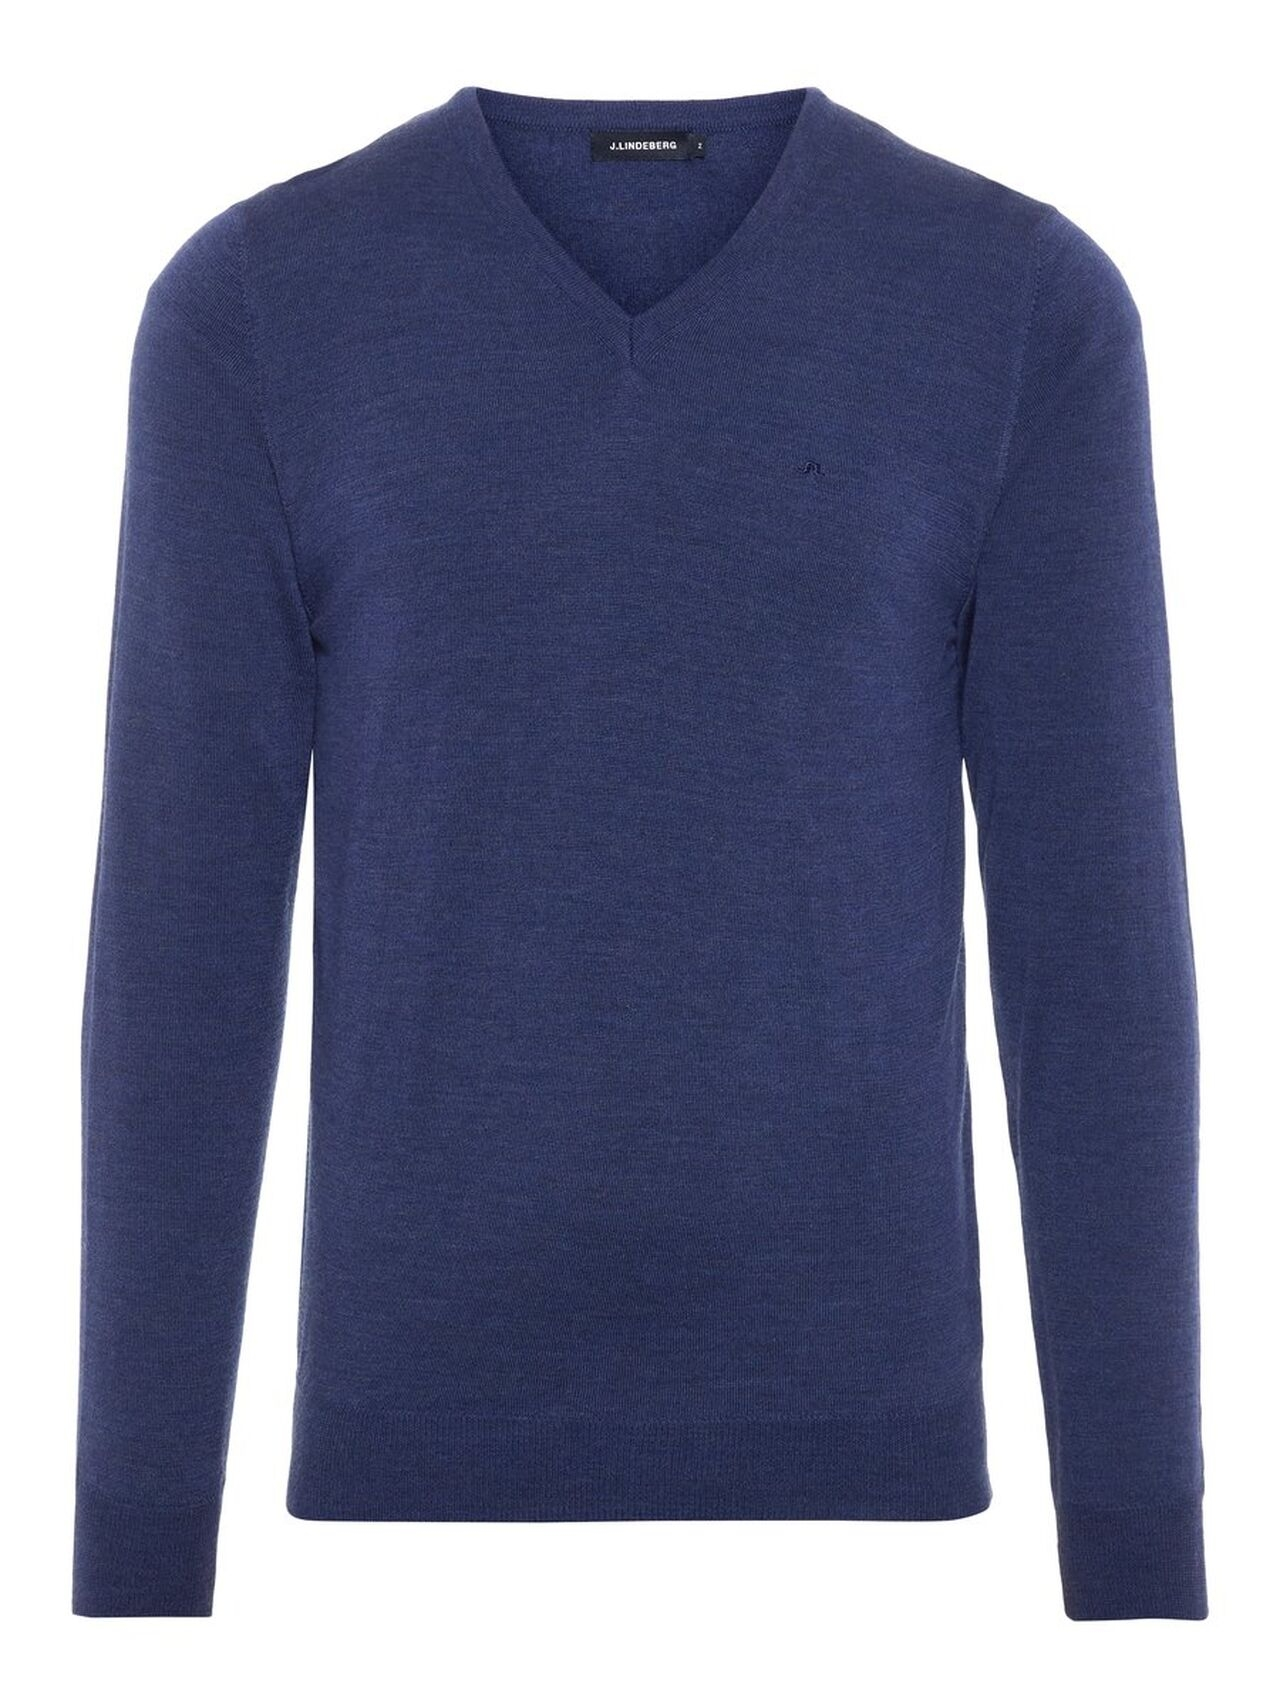 J.LINDEBERG Newman V-neck Perfect Merino Sweater Man Blå